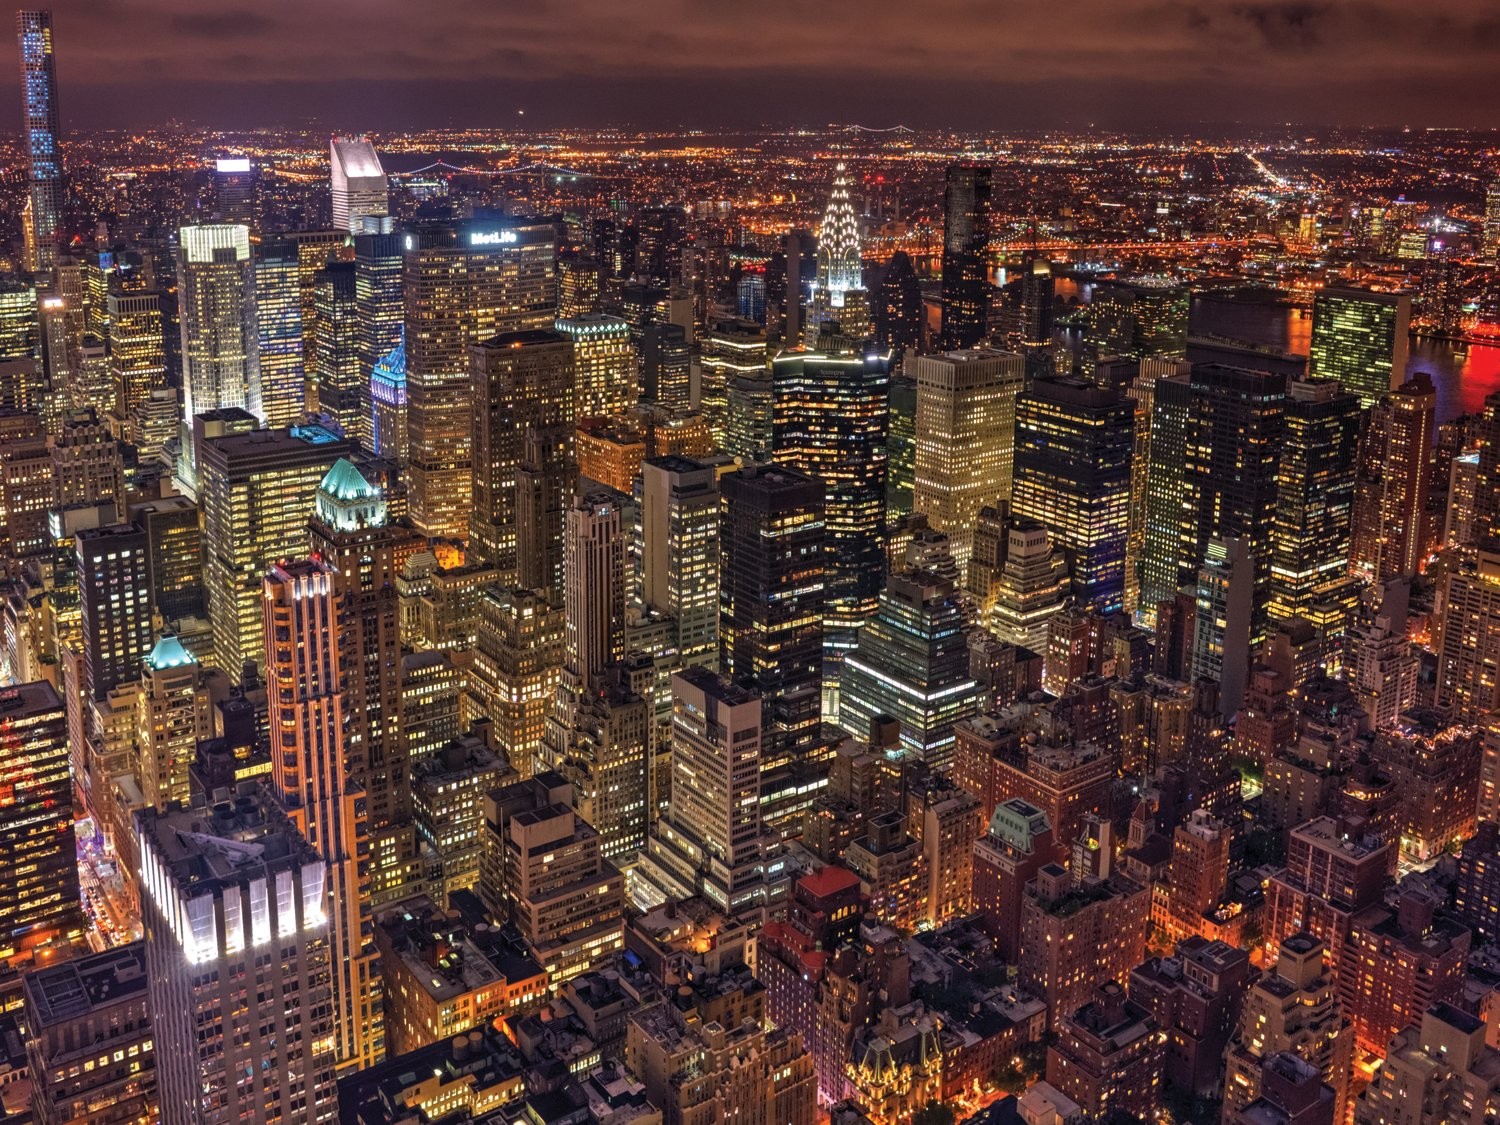 Jplo9|#Jp London PMUR1X999034 Jpl and Milton Mpounas Present Night Life New York City Light Skyline 4 Ft by 3 Ft Peel and Stick Fully Removable Wall Mural